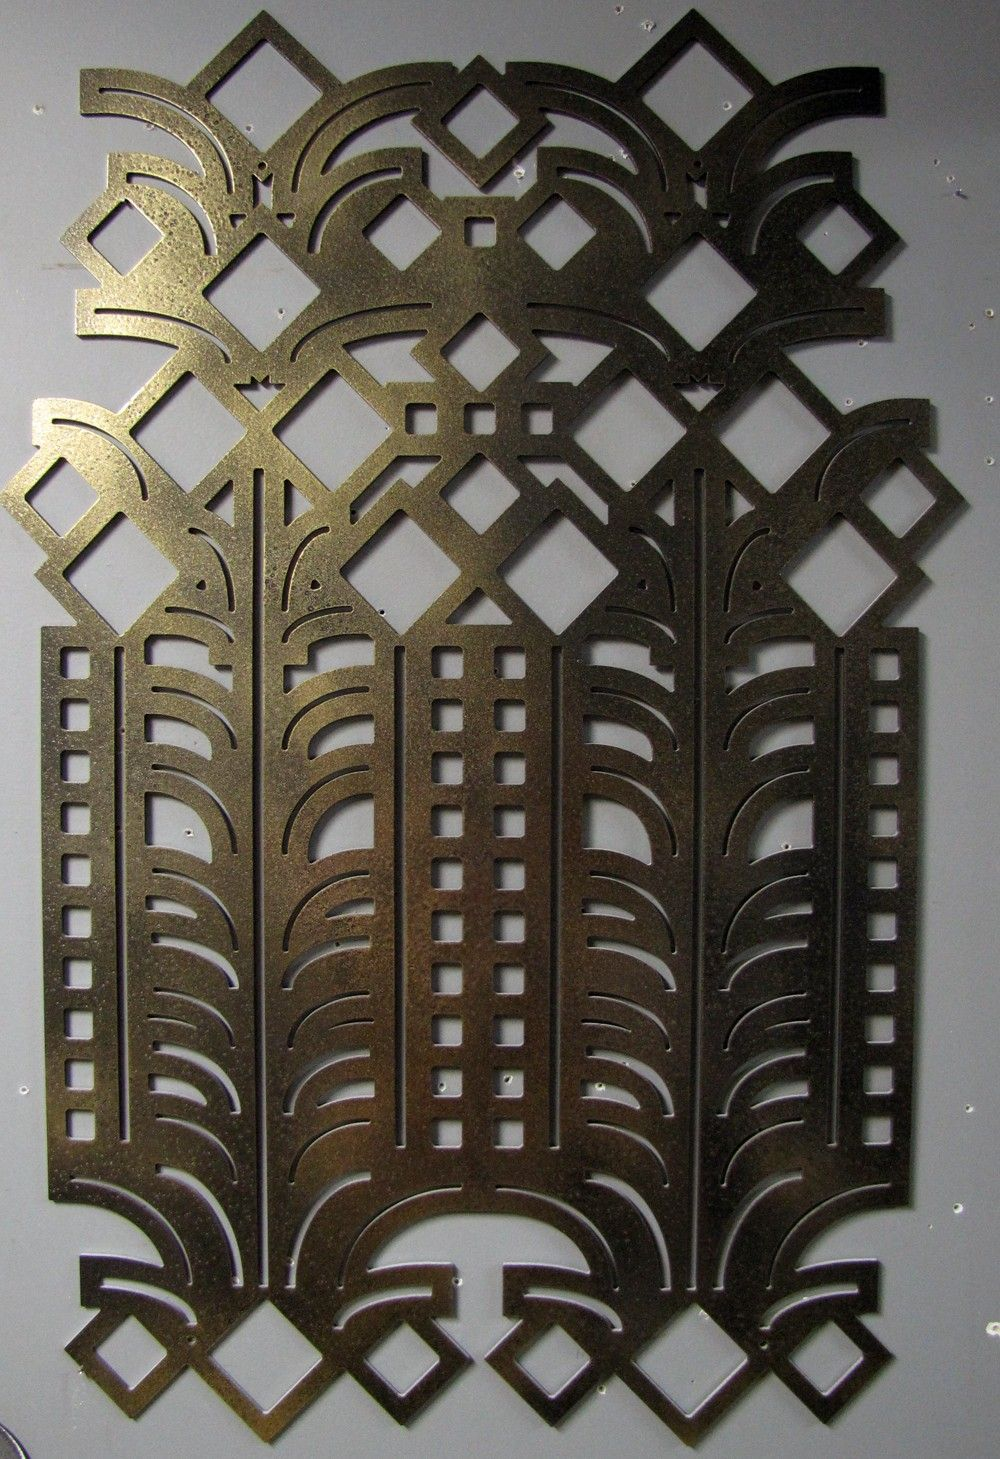 deco metal wall art research for possible future project neat projects pinterest metal. Black Bedroom Furniture Sets. Home Design Ideas